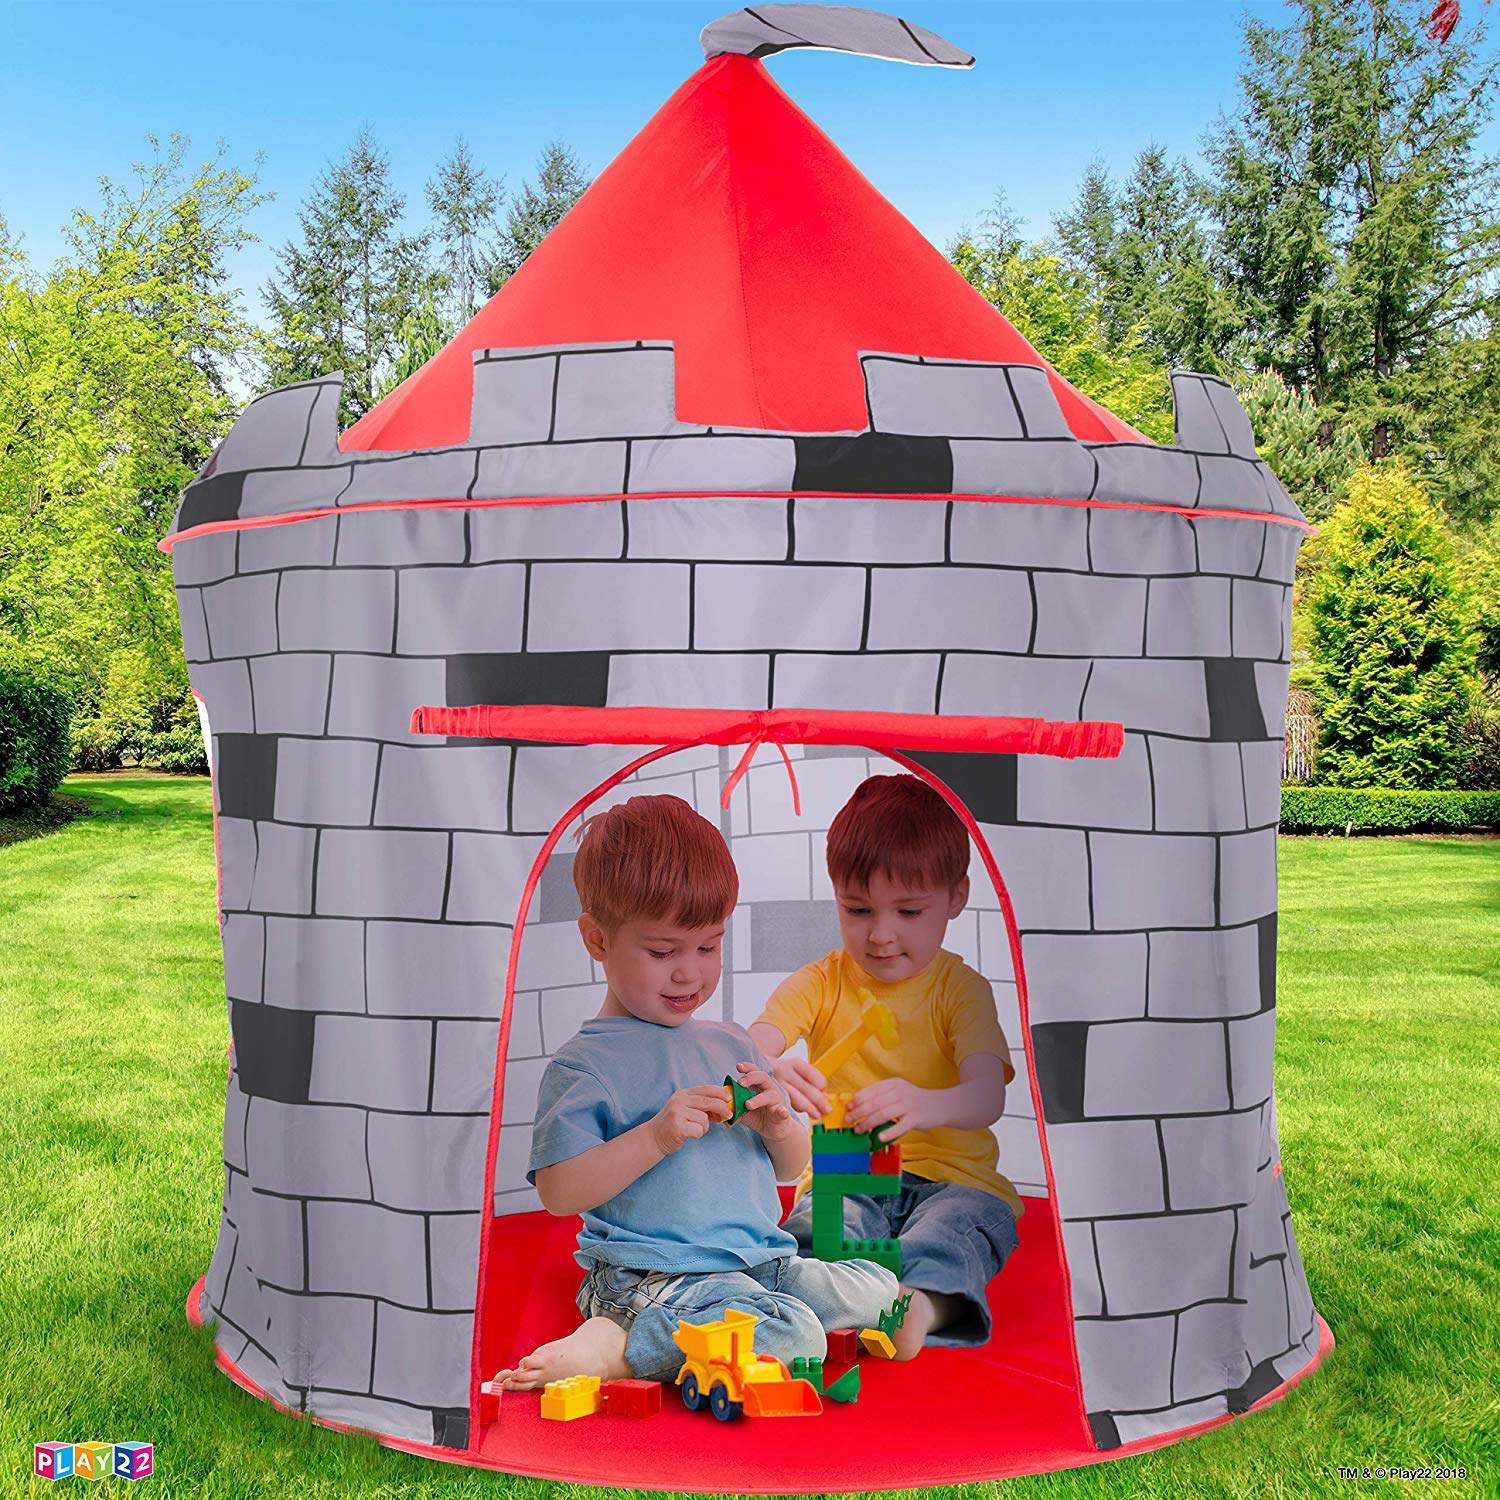 Play 22 – Knight Castle Play Tent